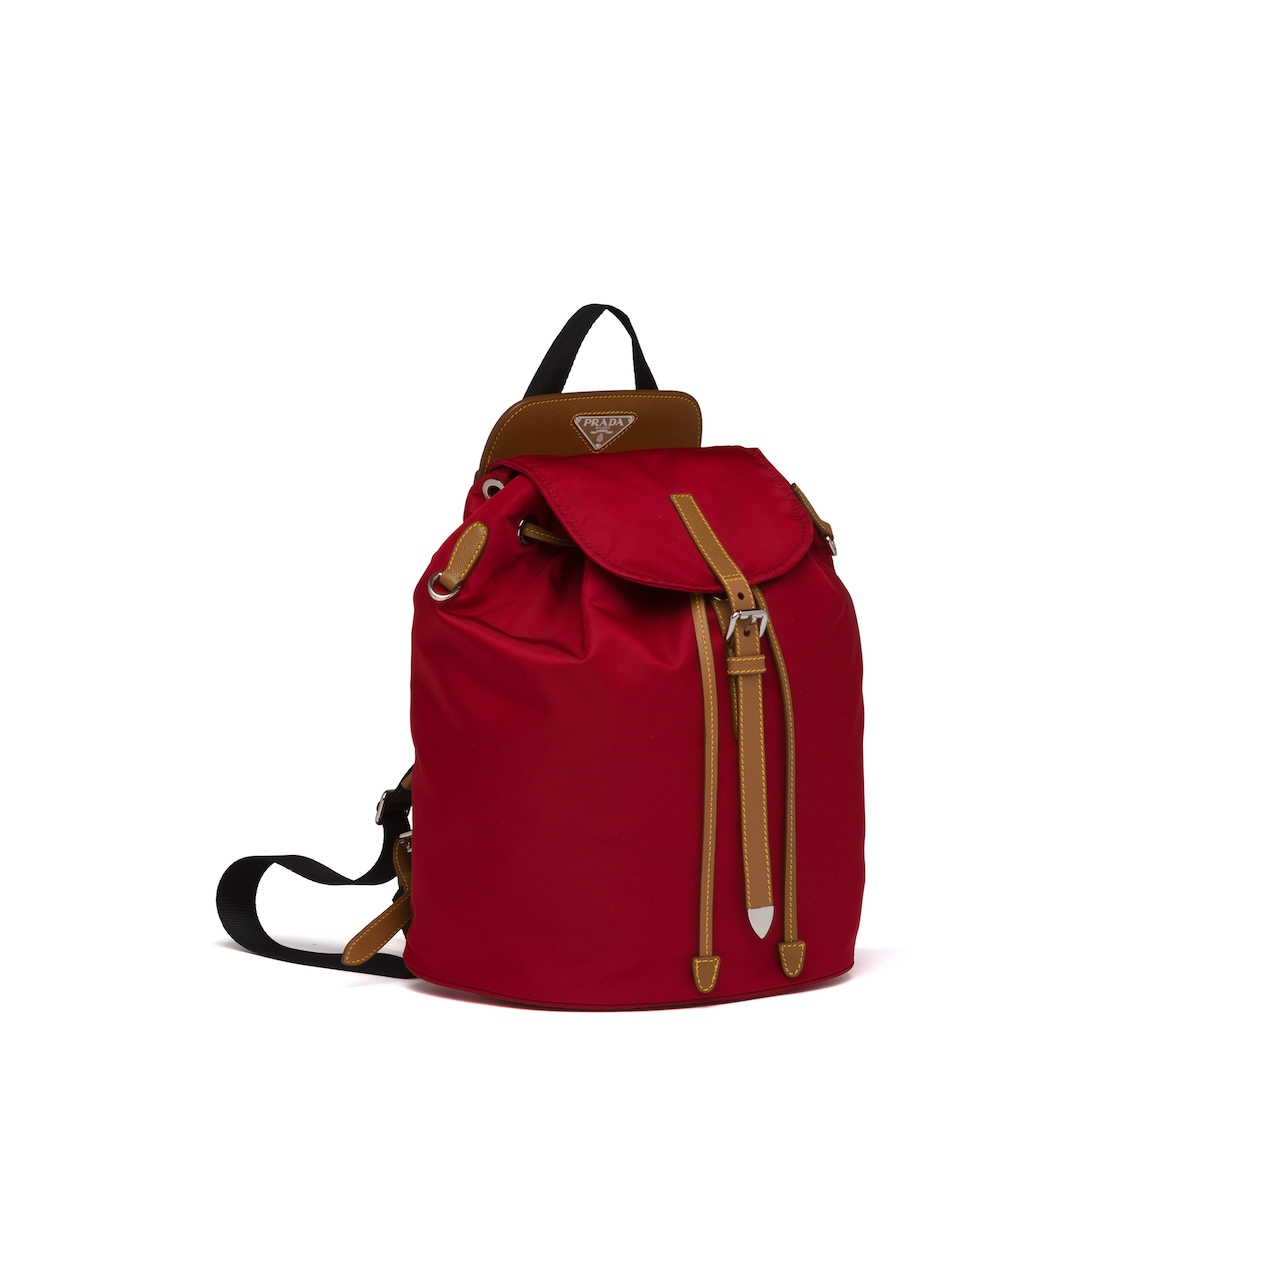 Prada Nylon and Saffiano leather backpack 3